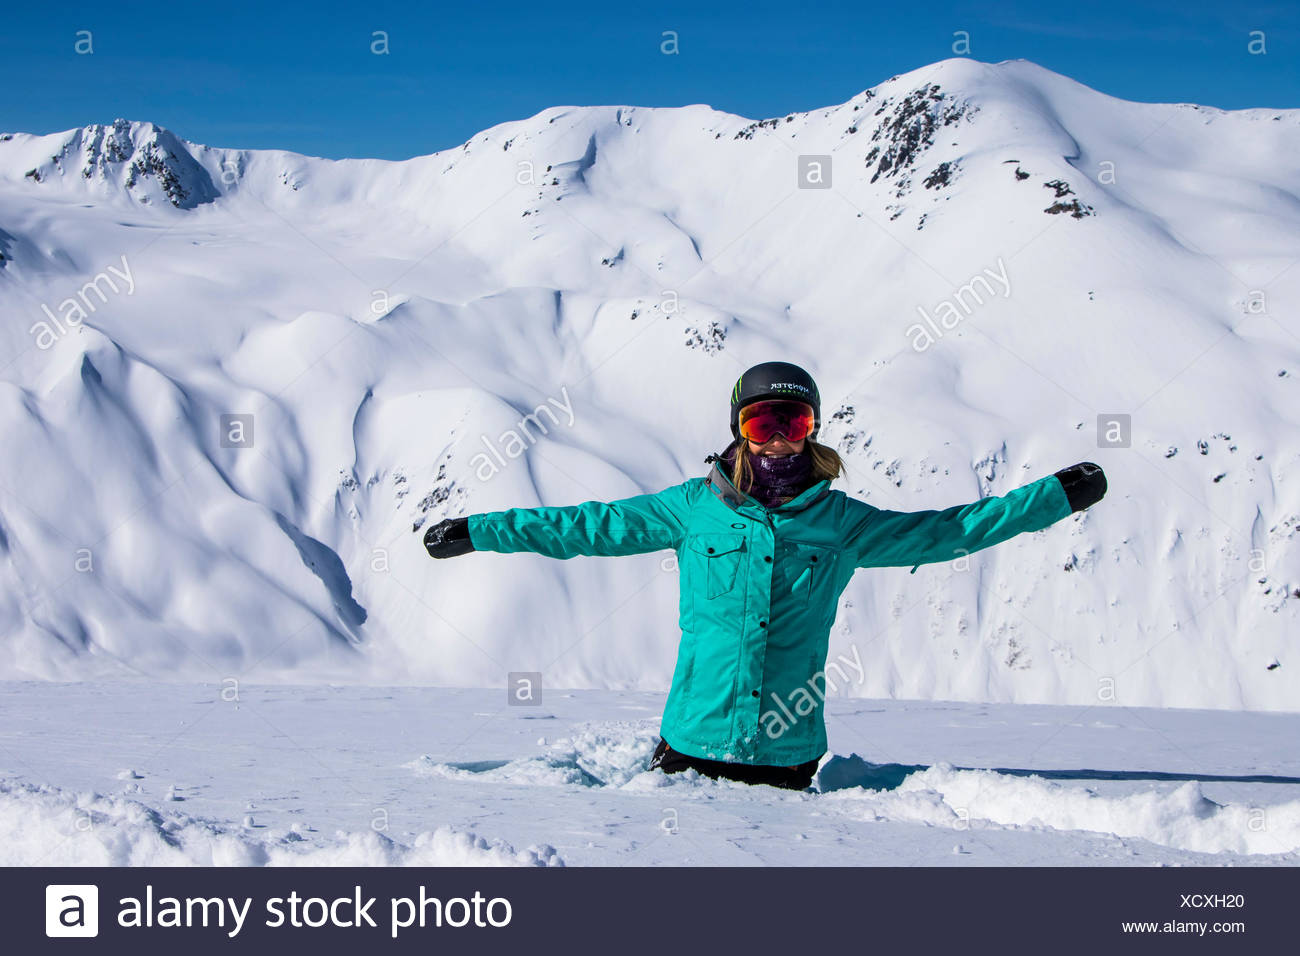 Professional Snowboarder and 2014 Olympic Gold Medalist, Jamie Anderson enjoys the mountains on a sunny bluebird day in Haines, Alaska. - Stock Image